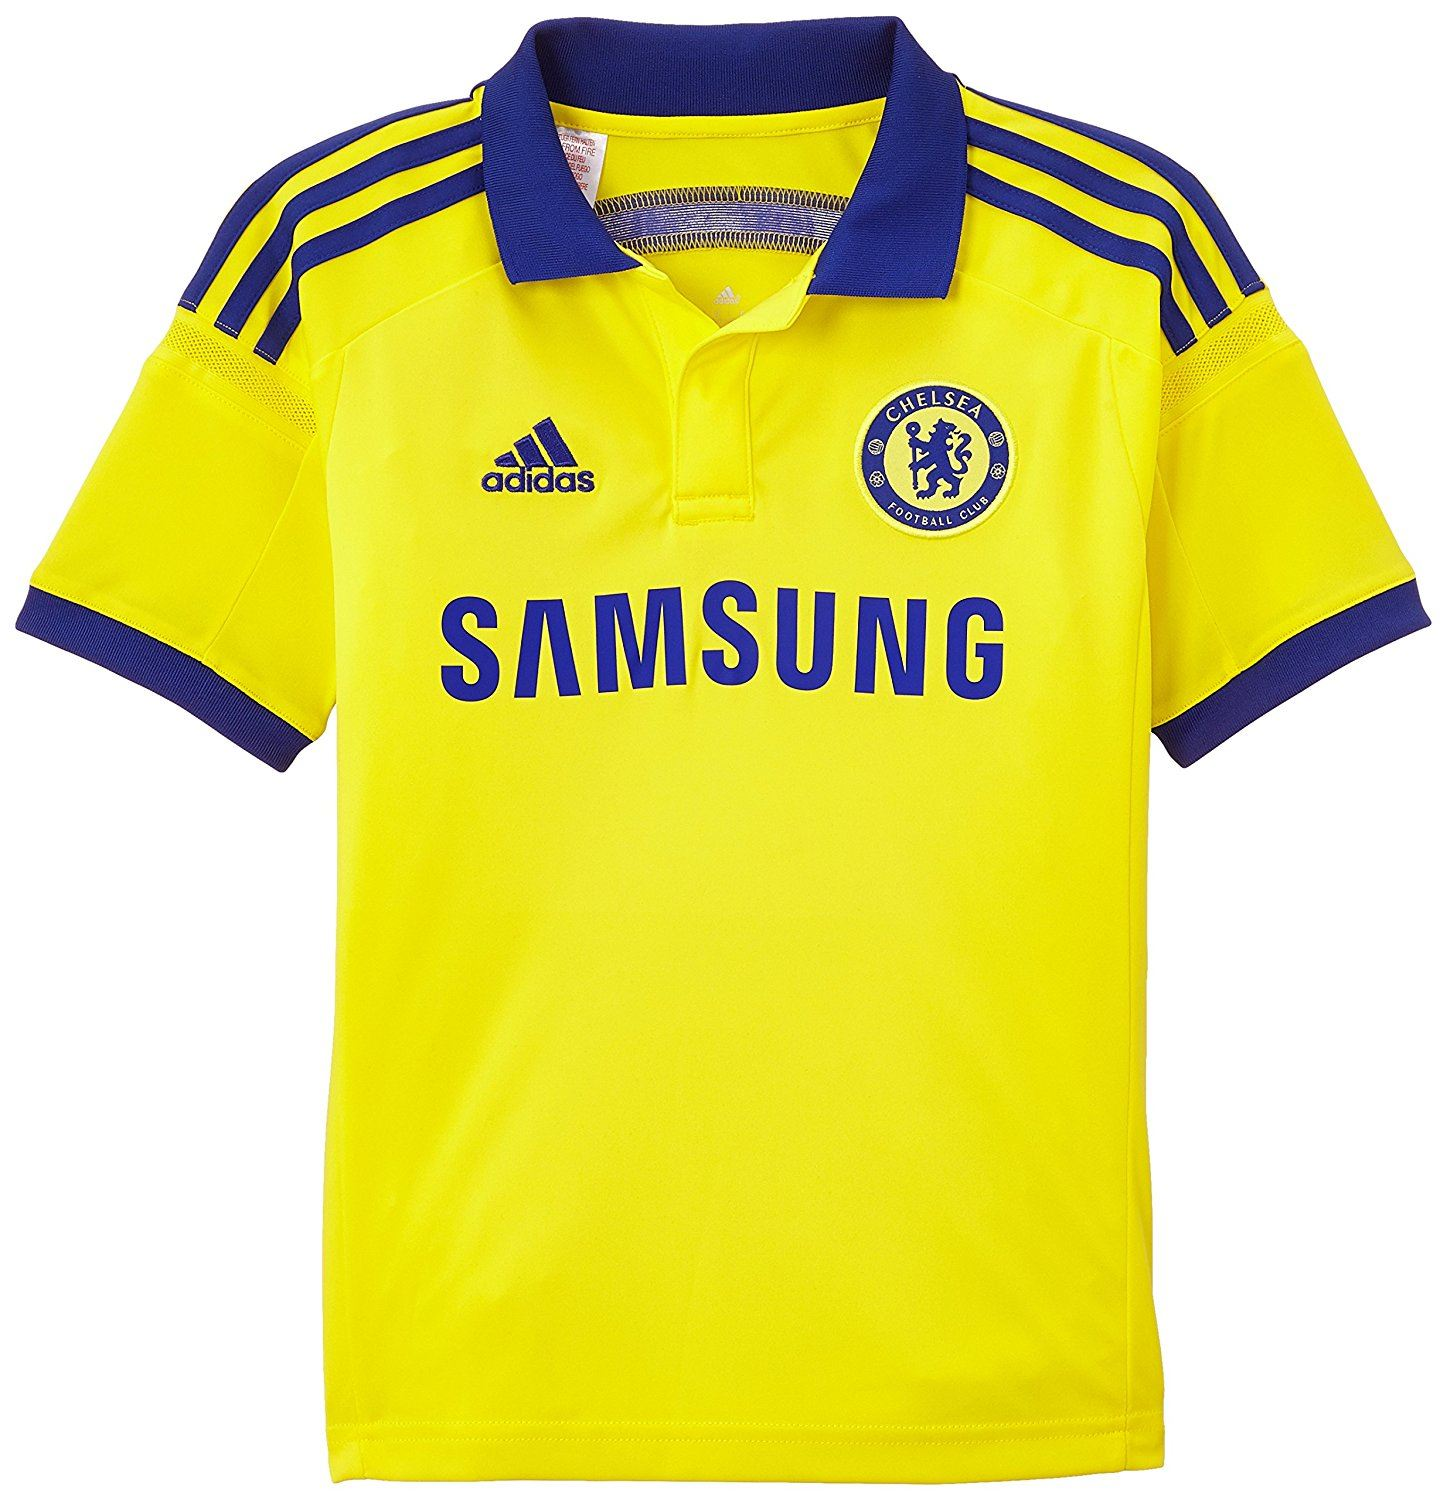 6ee11b6e9 adidas Chelsea 2014 2015 Away Jersey Mens Yellow Blue Football ...